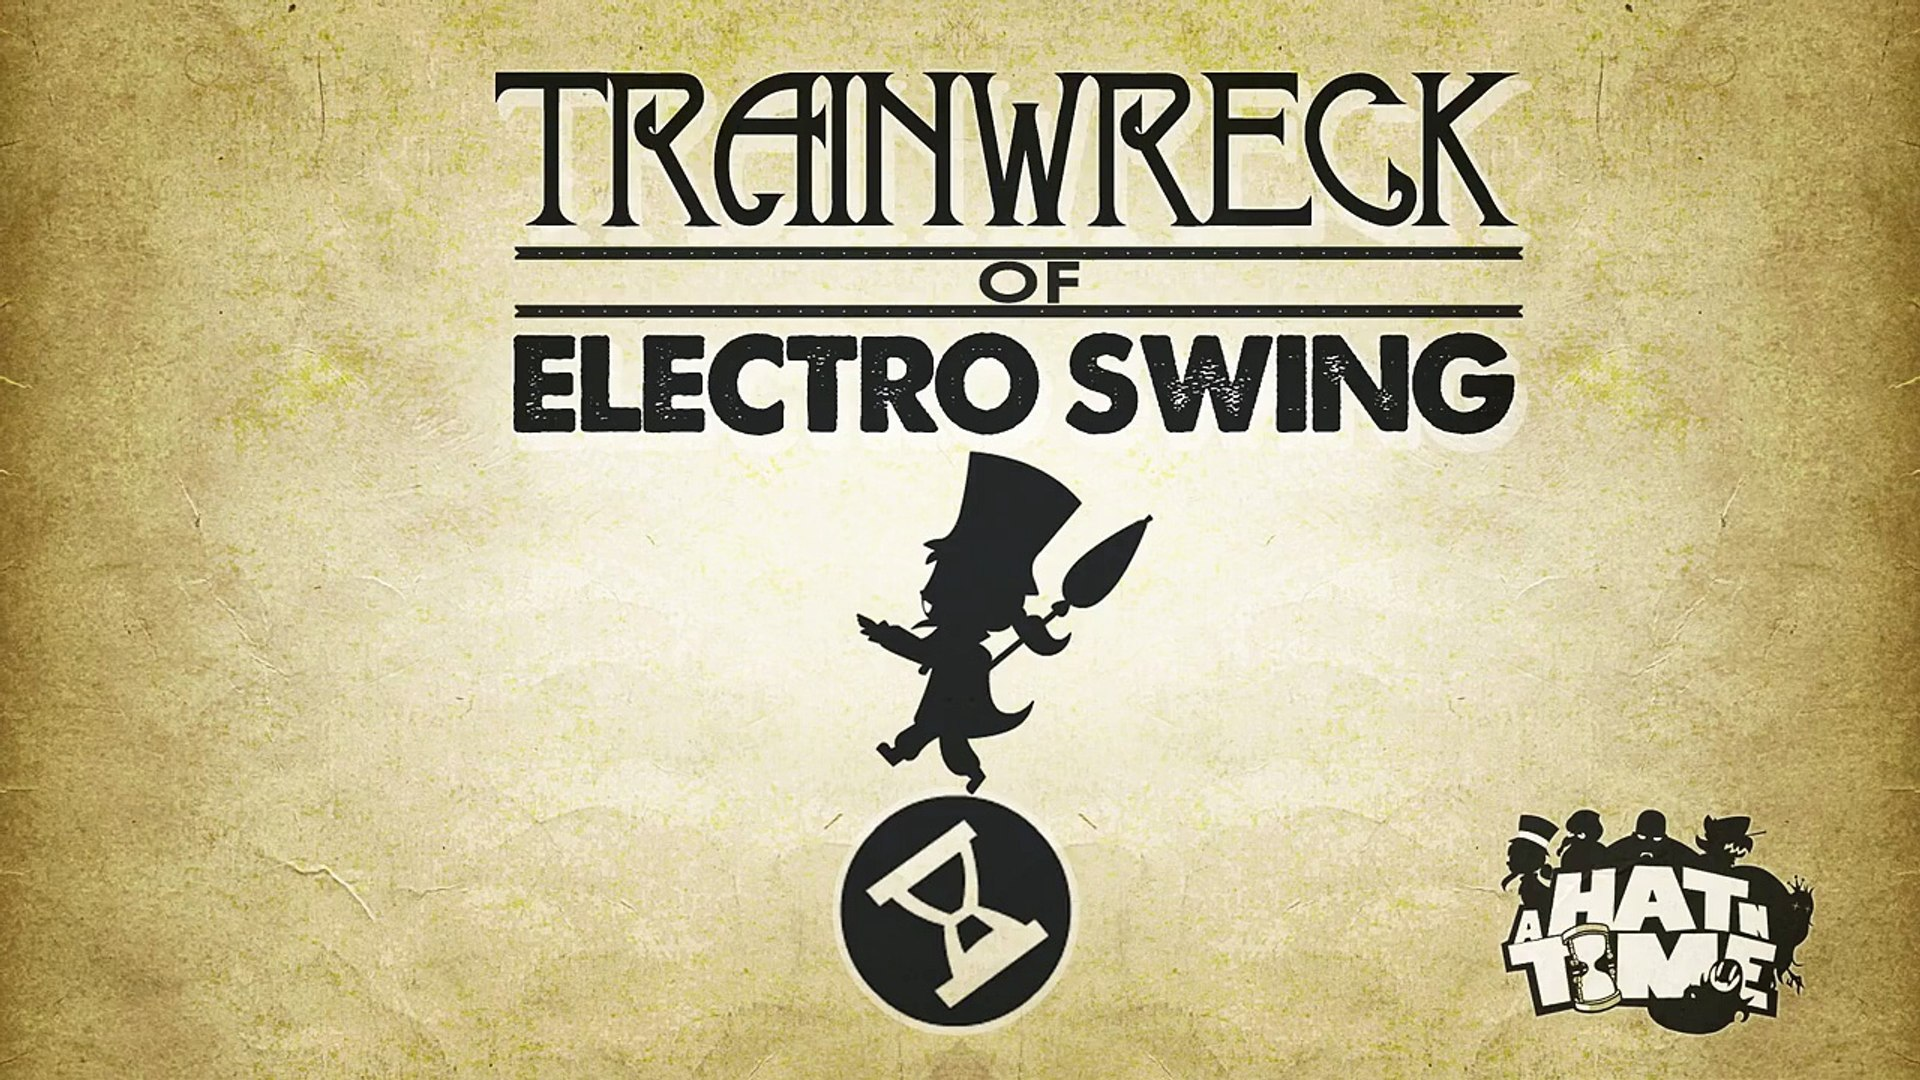 Trainwreck Of Electro Swing A Hat In Time Remix